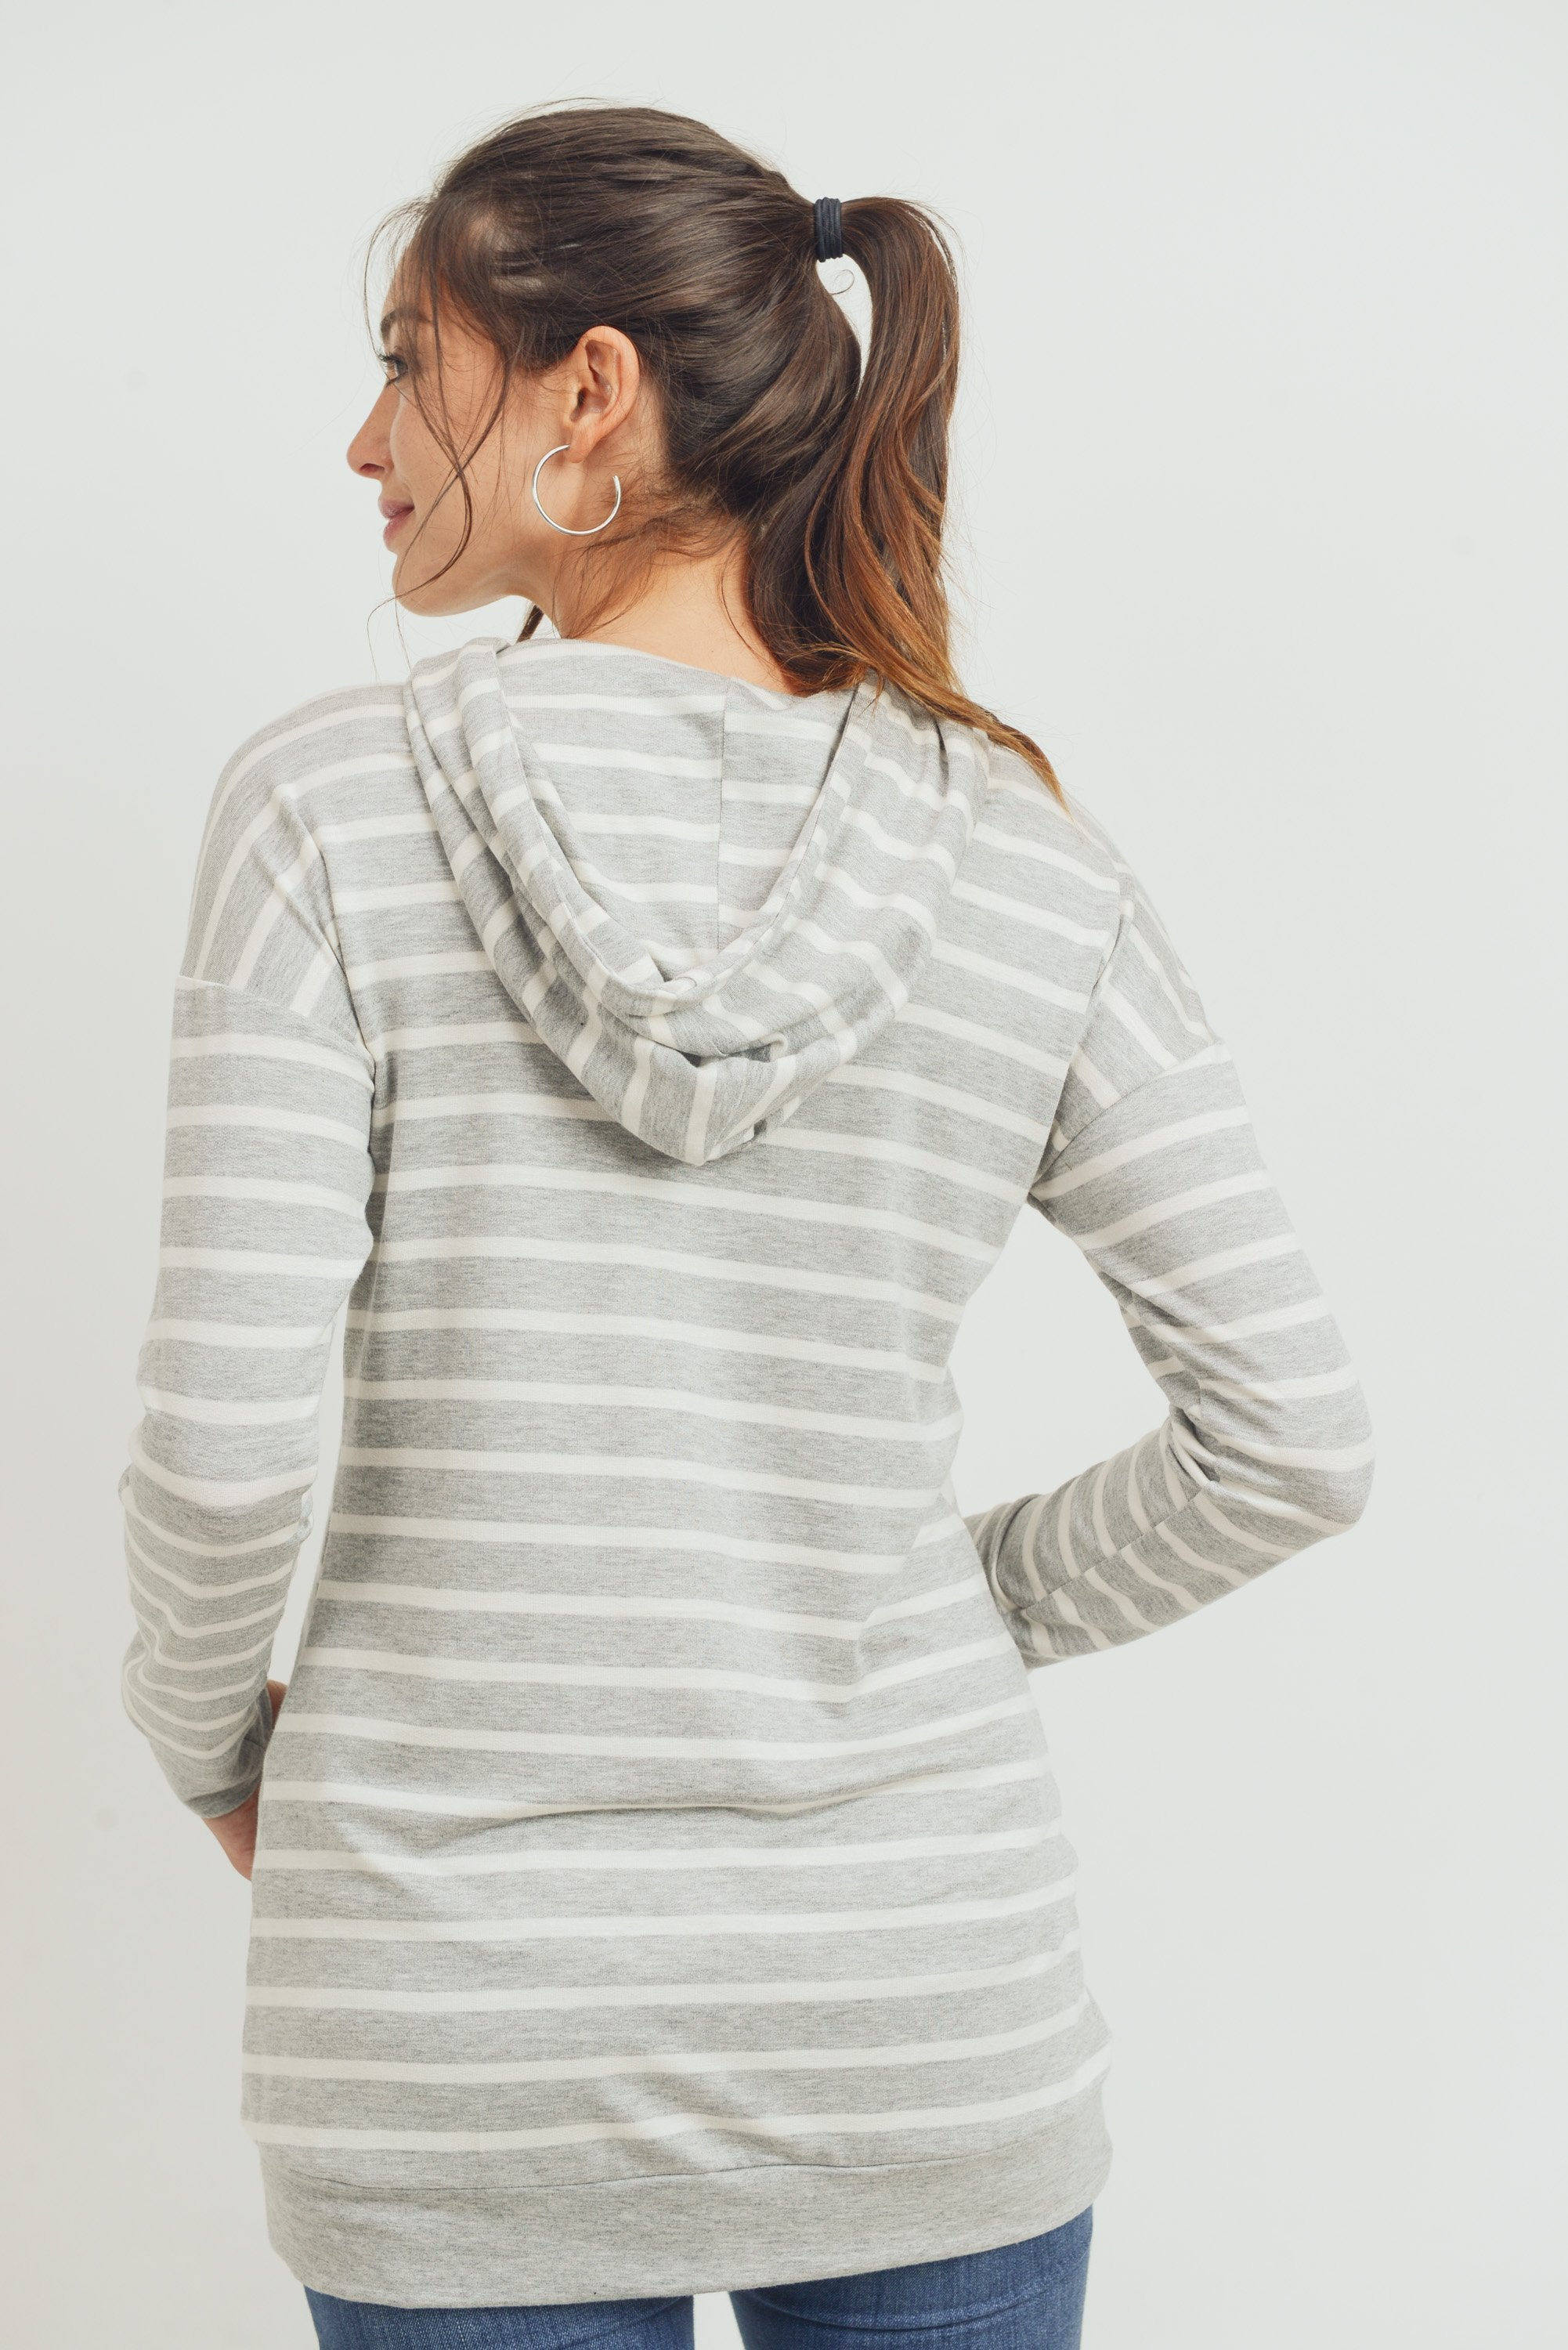 French Terry Striped Maternity Nursing Hoodie- Grey/ Ivory